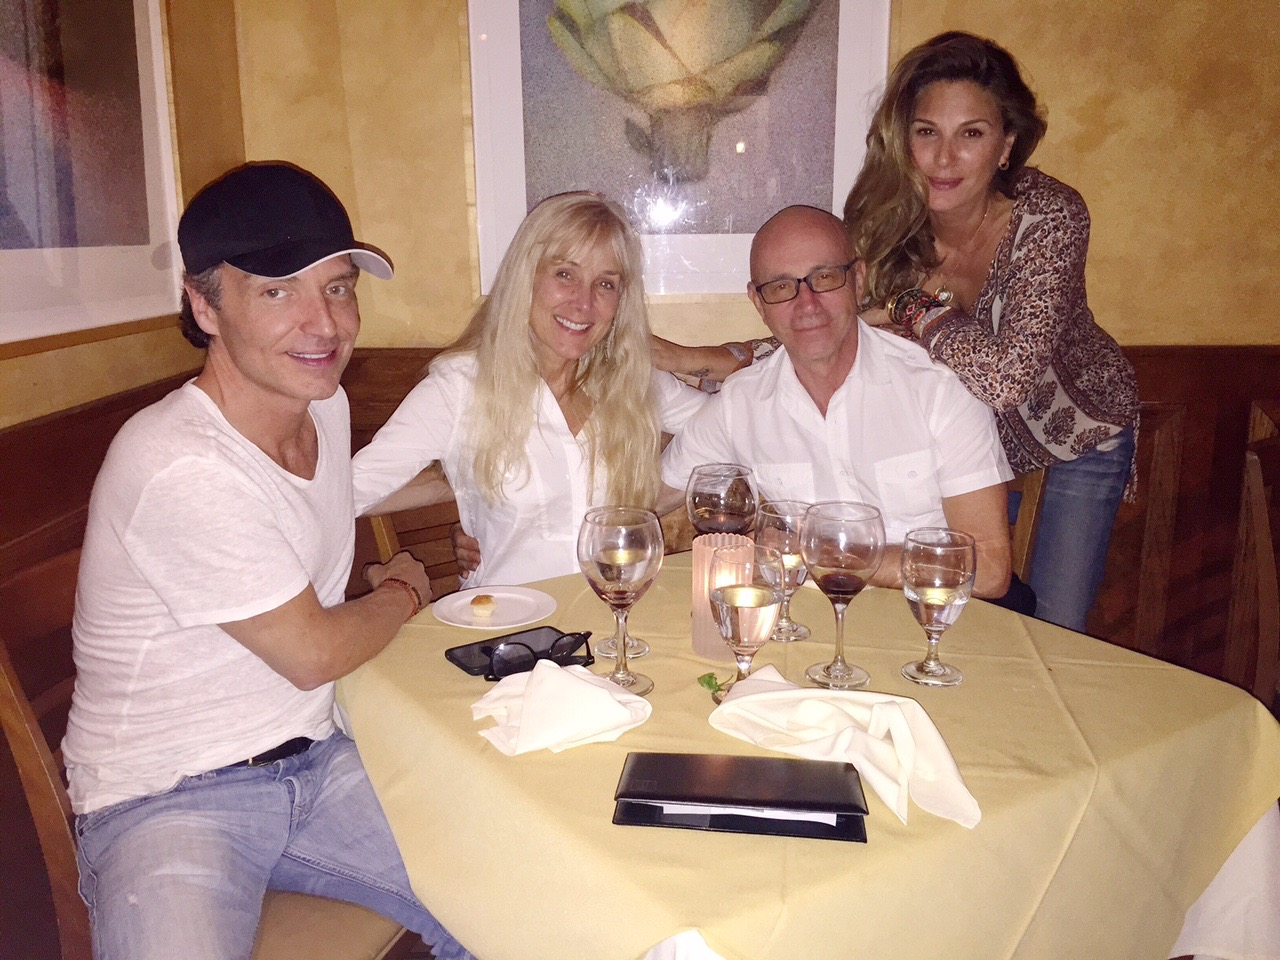 Richard Marx, Janey, Bruce, and Daisy Fuentes in CA